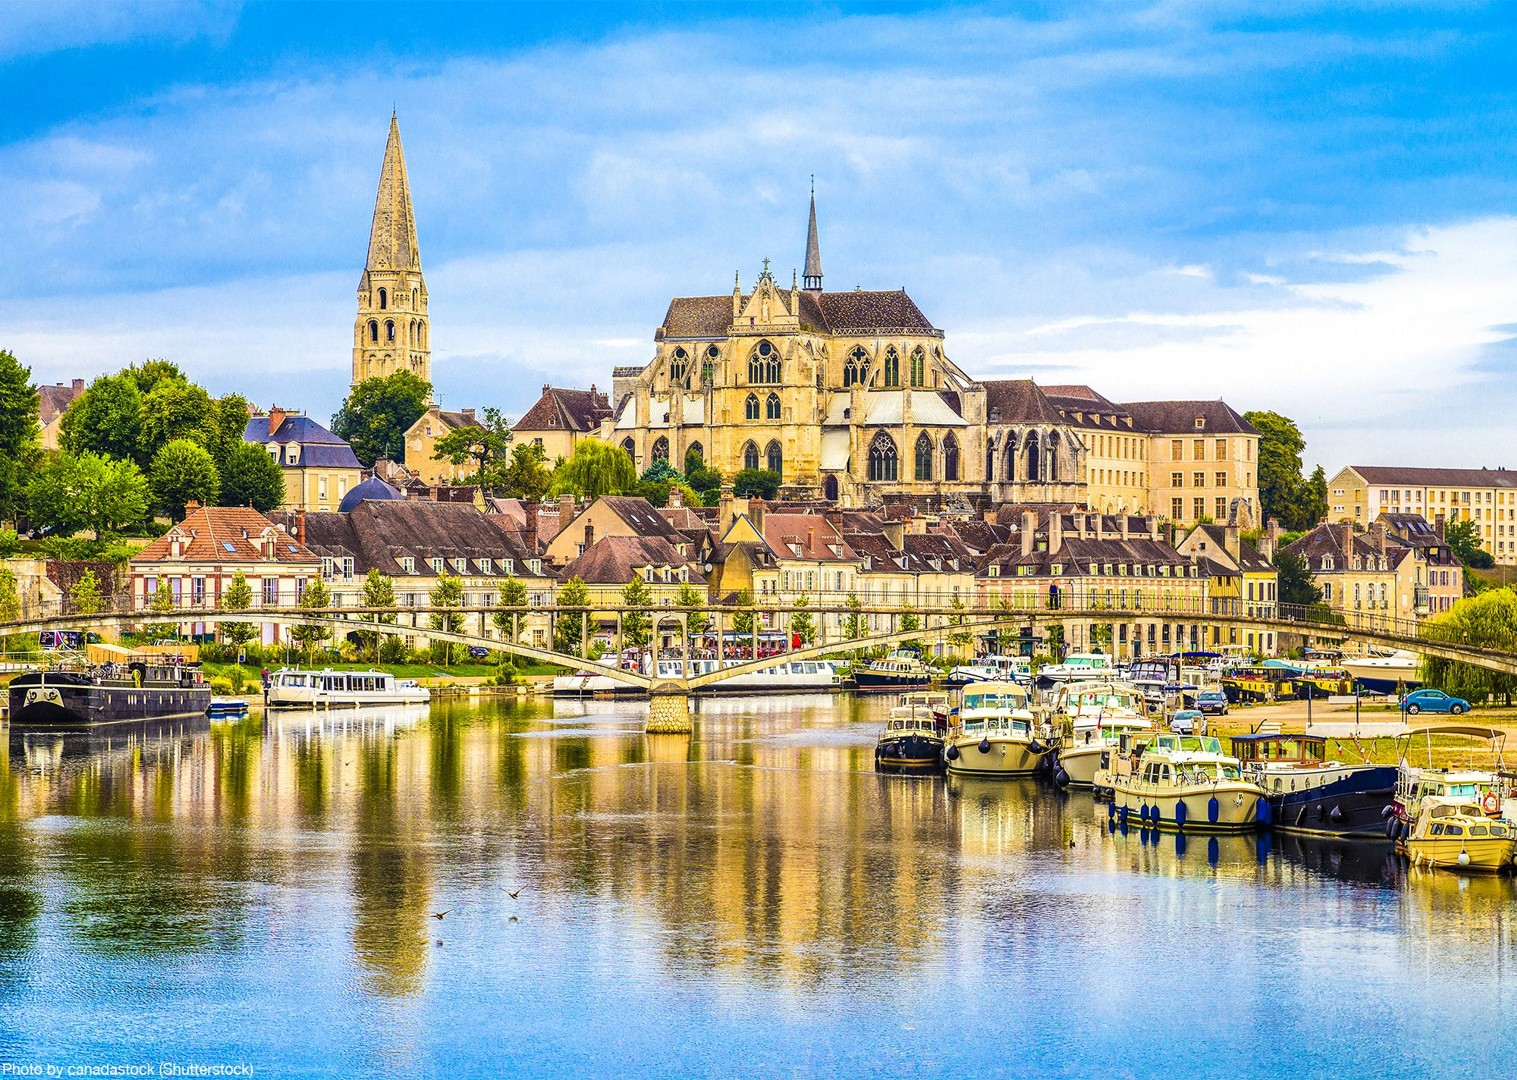 auxerre-cathédrale-saint-etienne-burgundy-canals-cycling.jpg - France - Burgundy - Caves and Canals - Self-Guided Leisure Cycling Holiday - Leisure Cycling